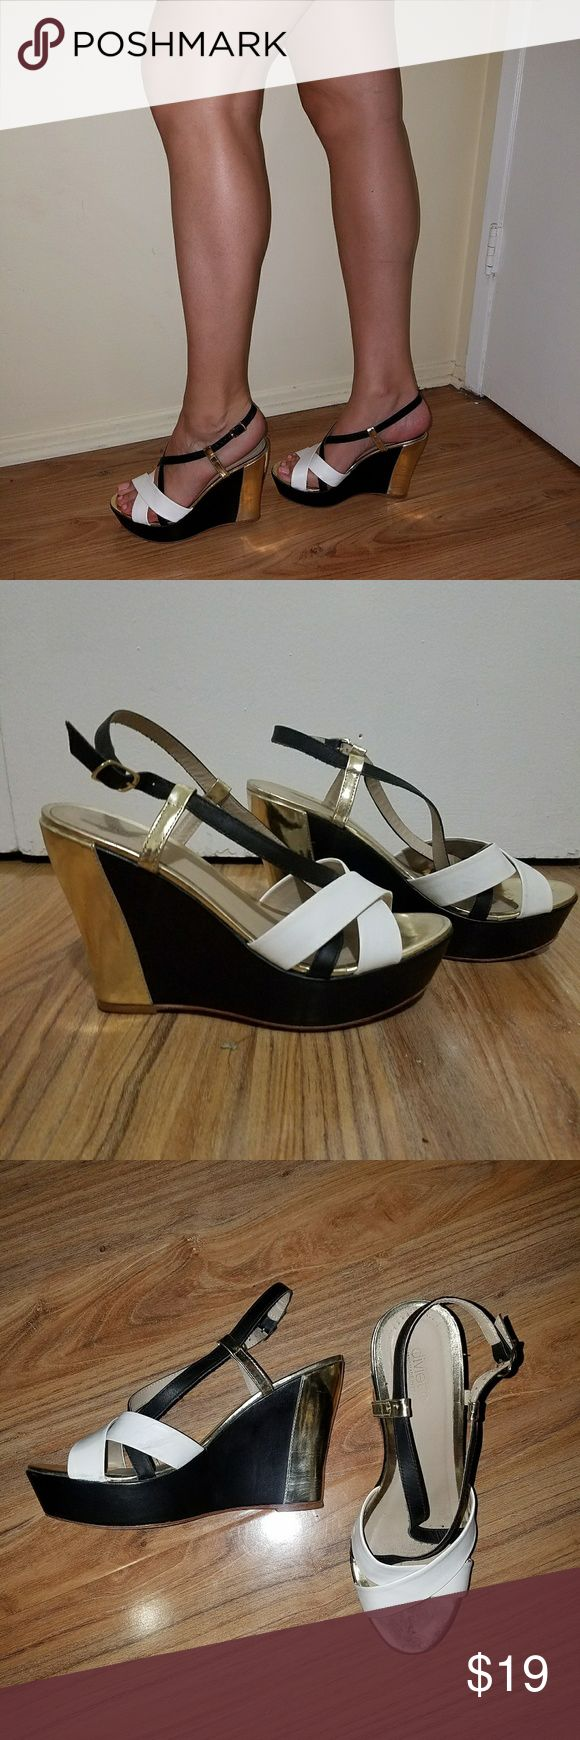 """Gold white and black strappy wedges Sleek black and gold base with white criss cross steps Surprisingly comfy and very easy to walk in 4.75 inch heel with a 1.5"""" platform  Worn 1x while filming a tv show indoors Shoes Wedges"""